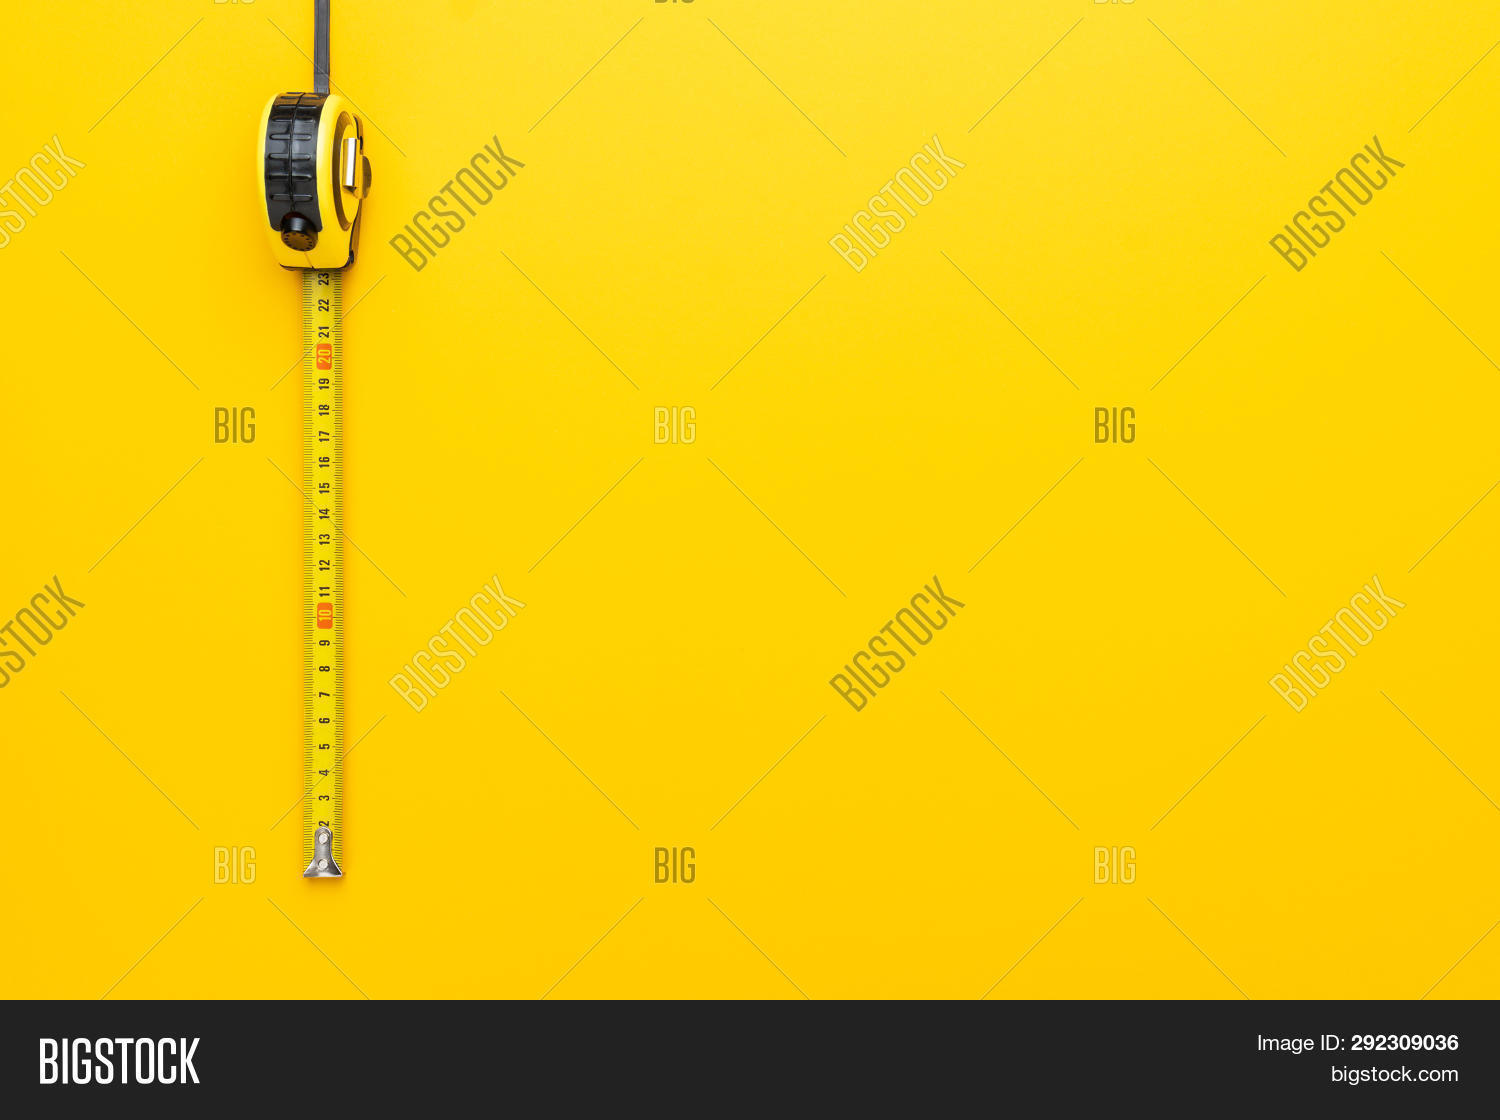 accuracy,background,centimeter,cm,construct,construction,design,diy,equipment,industry,instrument,length,line,long,measure,measurement,metal,metric,millimeter,nobody,number,object,ruler,scale,size,straight,tape,textured,tool,yellow